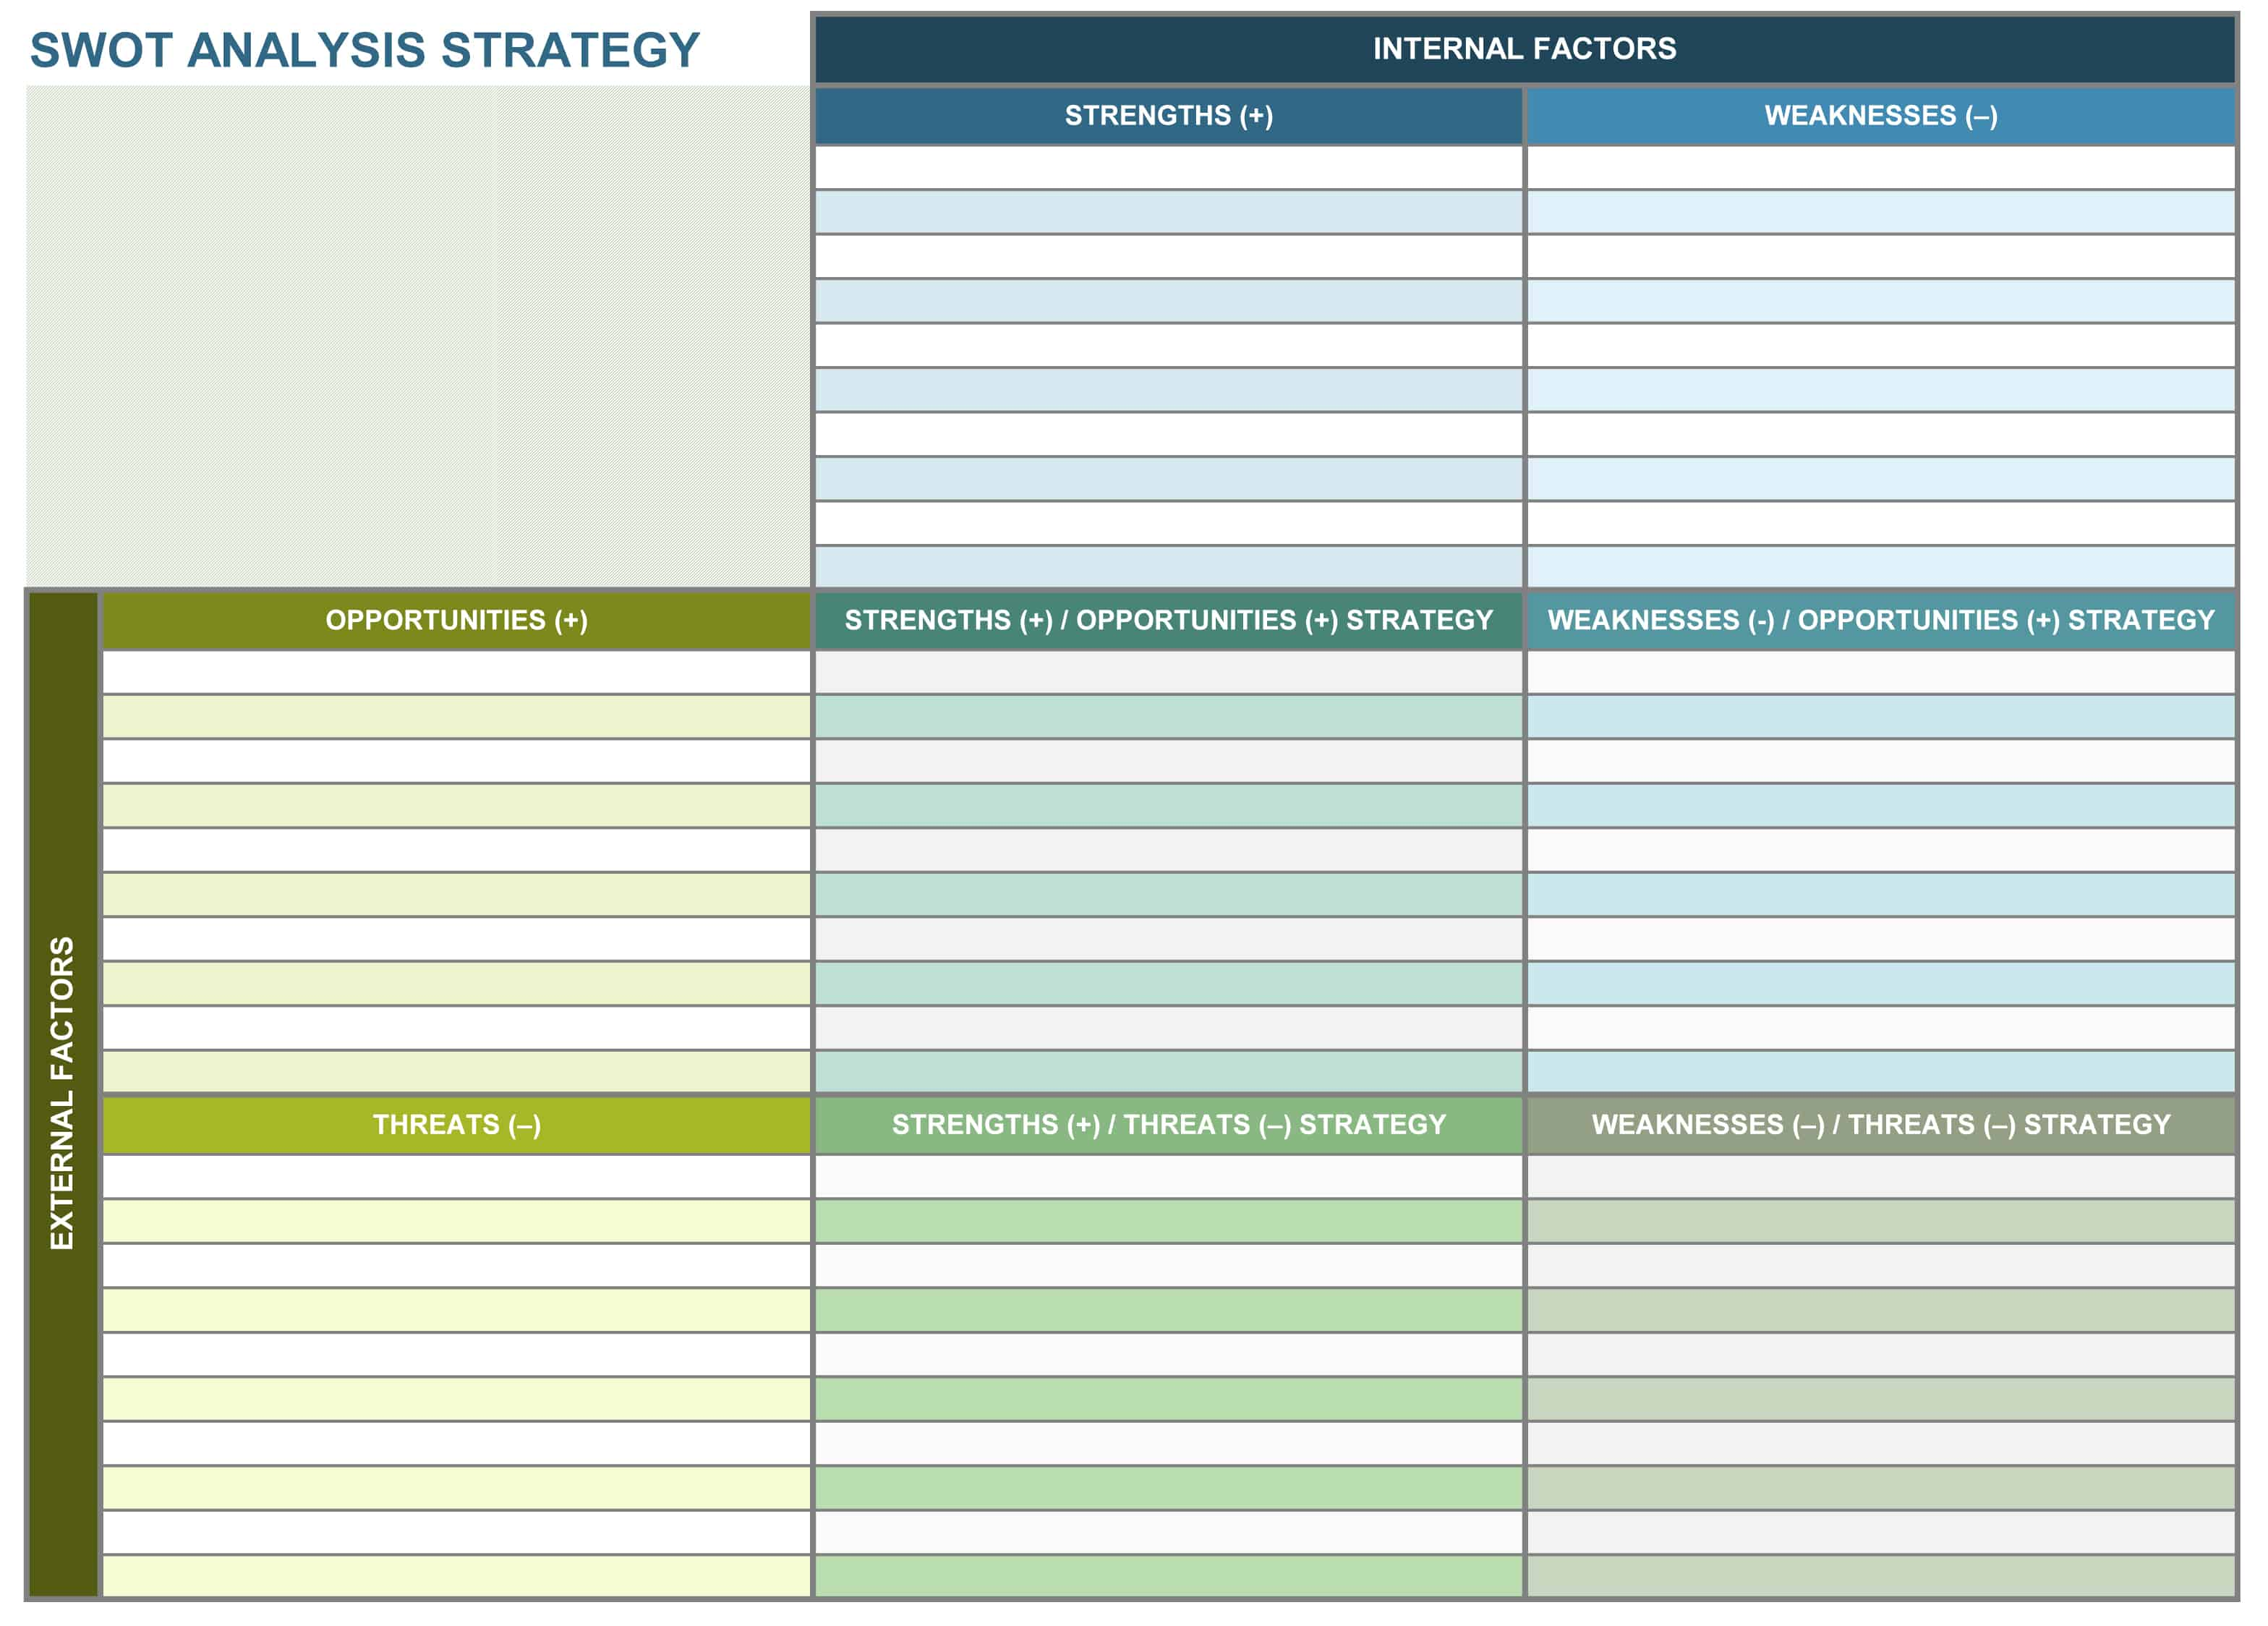 Free product management templates smartsheet swot analysis strategy excel template flashek